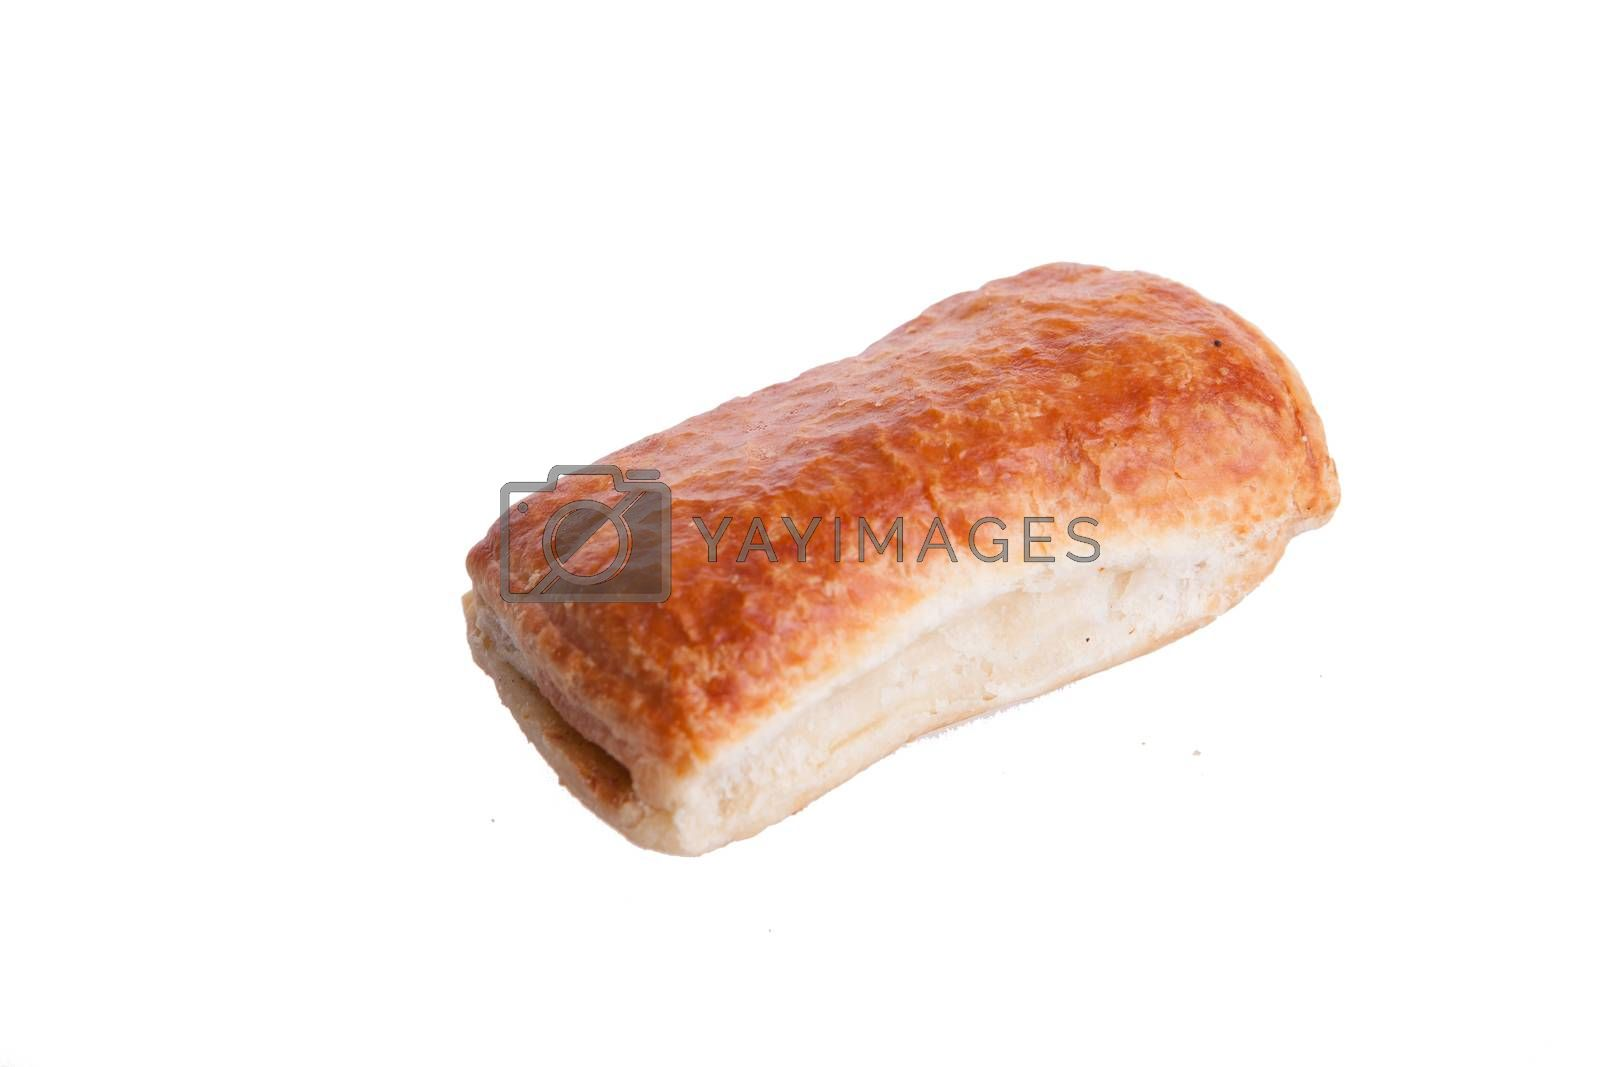 Puff and tasty pastry isolated on white background. Delicious snack